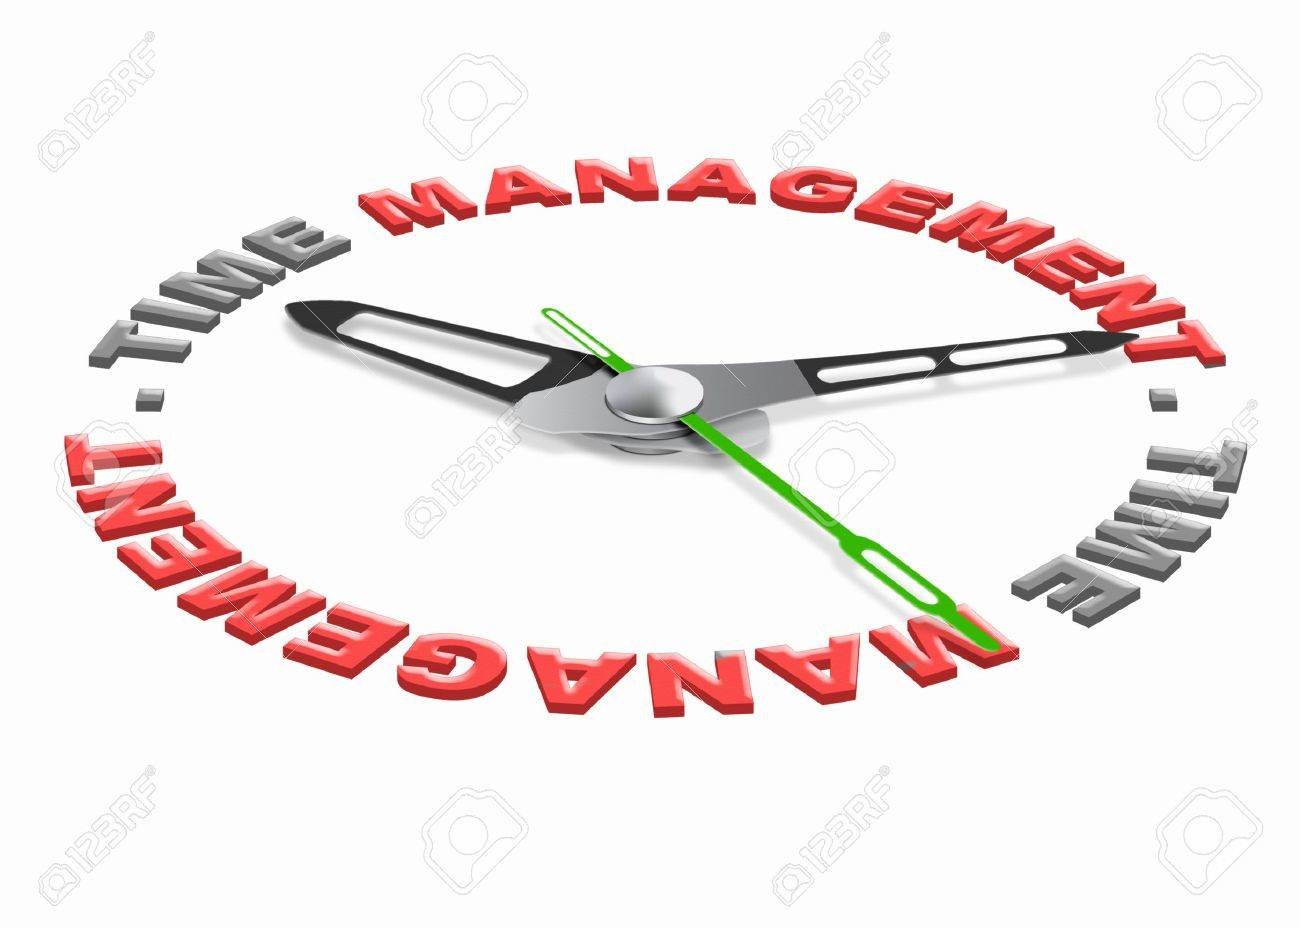 time management project planning with a daily scedule to increase efficience and productivity. Organize your tasks set goals and don't waiste time. Stock Photo - 9914389